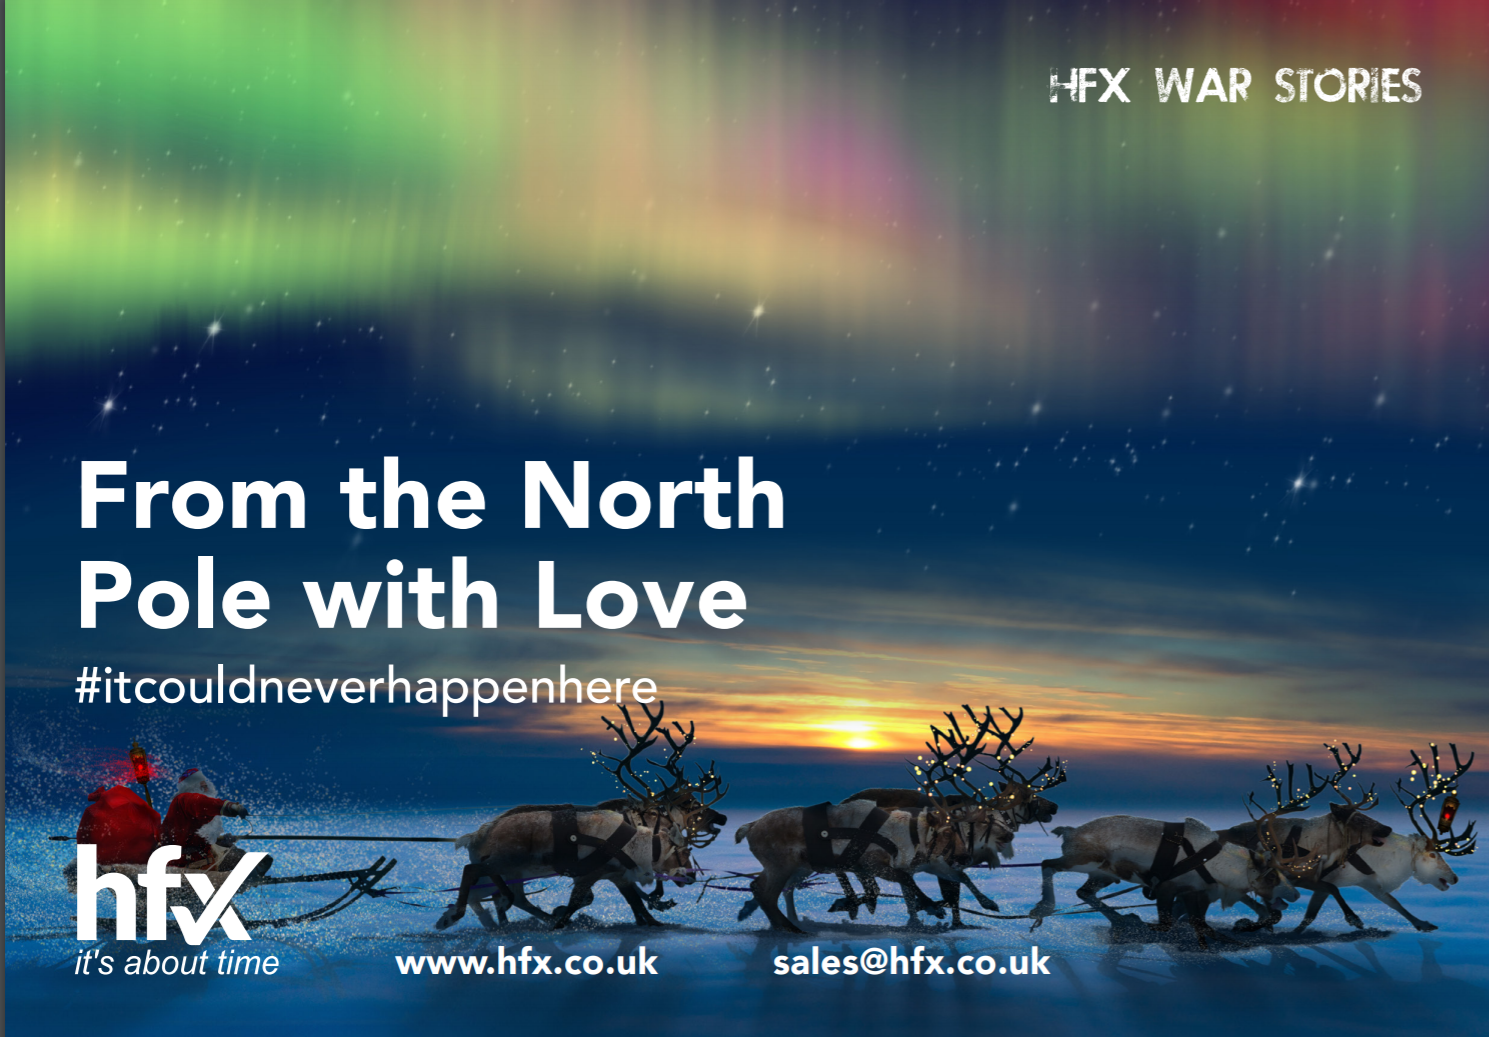 From the North Pole with Love